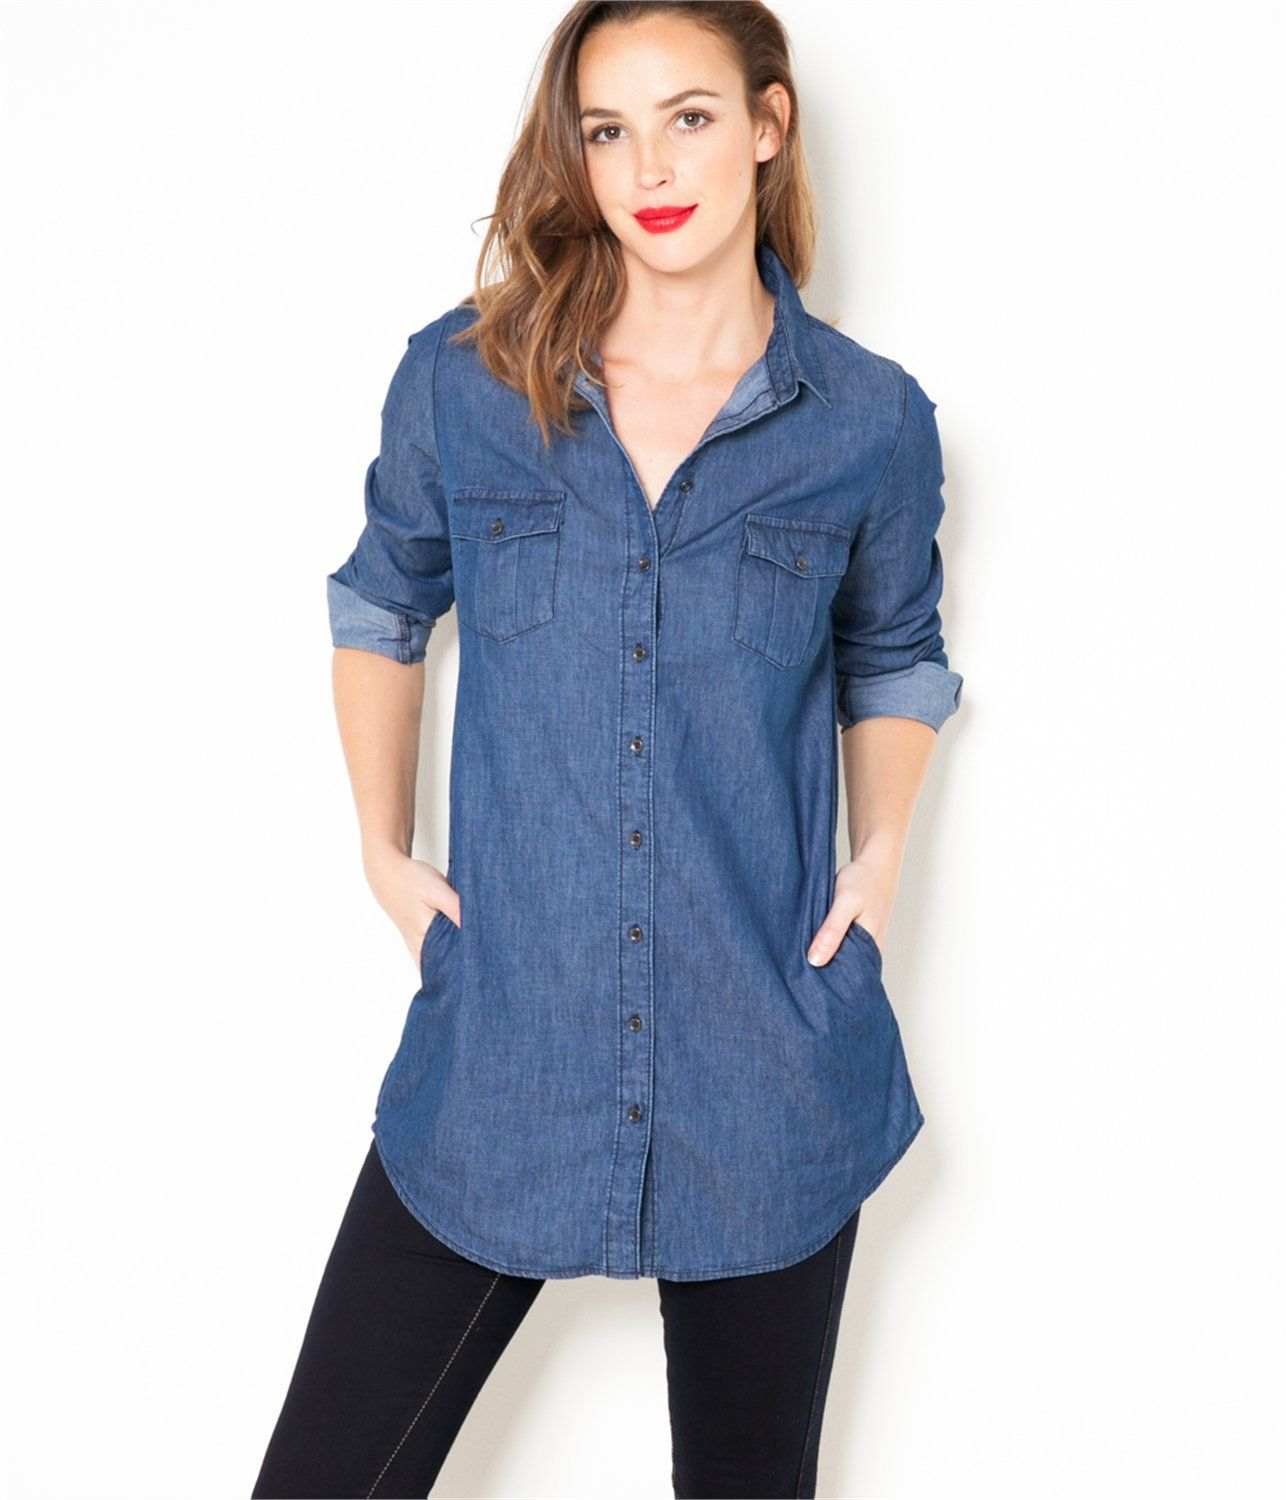 vente tunique femme en denim brut t36 chemisier camaieu une chemise longue mode. Black Bedroom Furniture Sets. Home Design Ideas